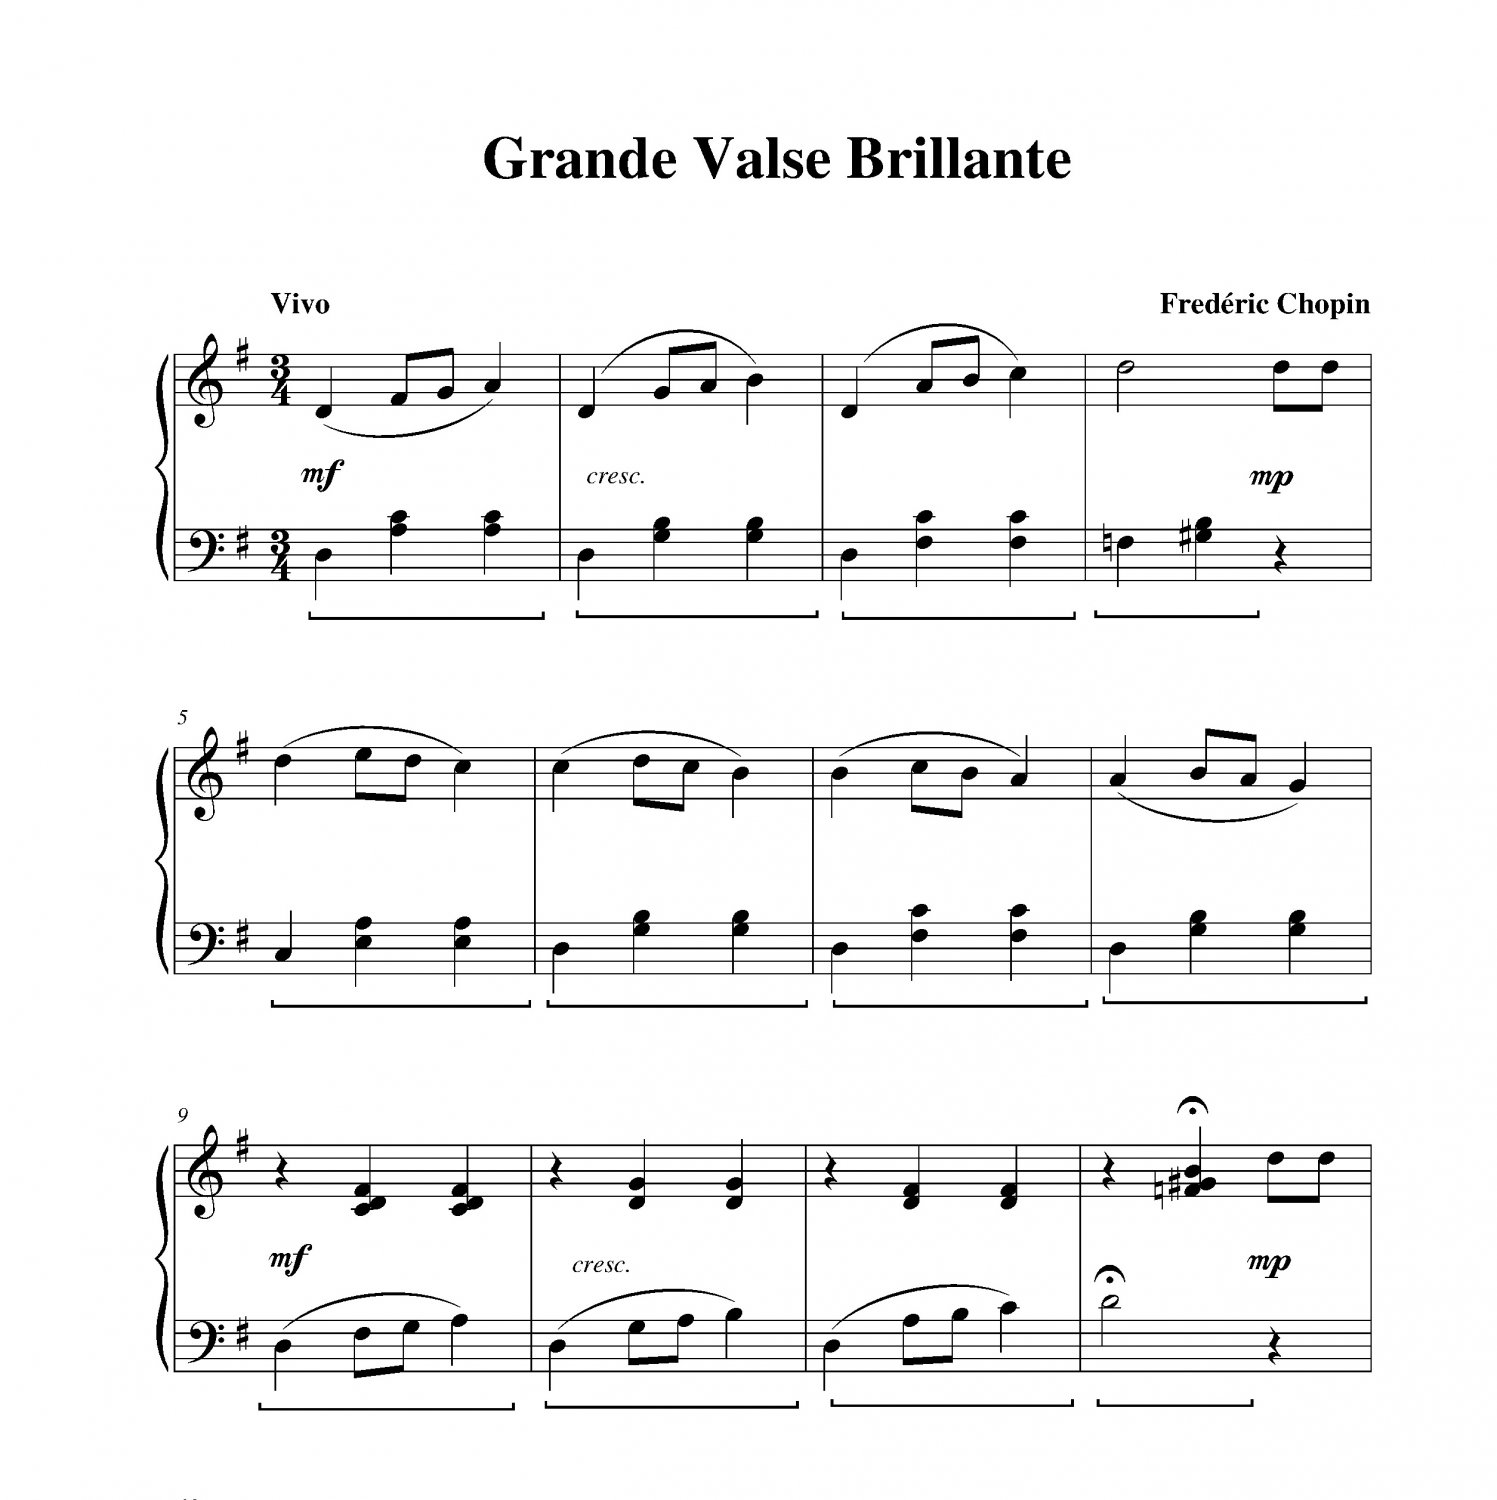 Chopin - Grande Valse Brillante